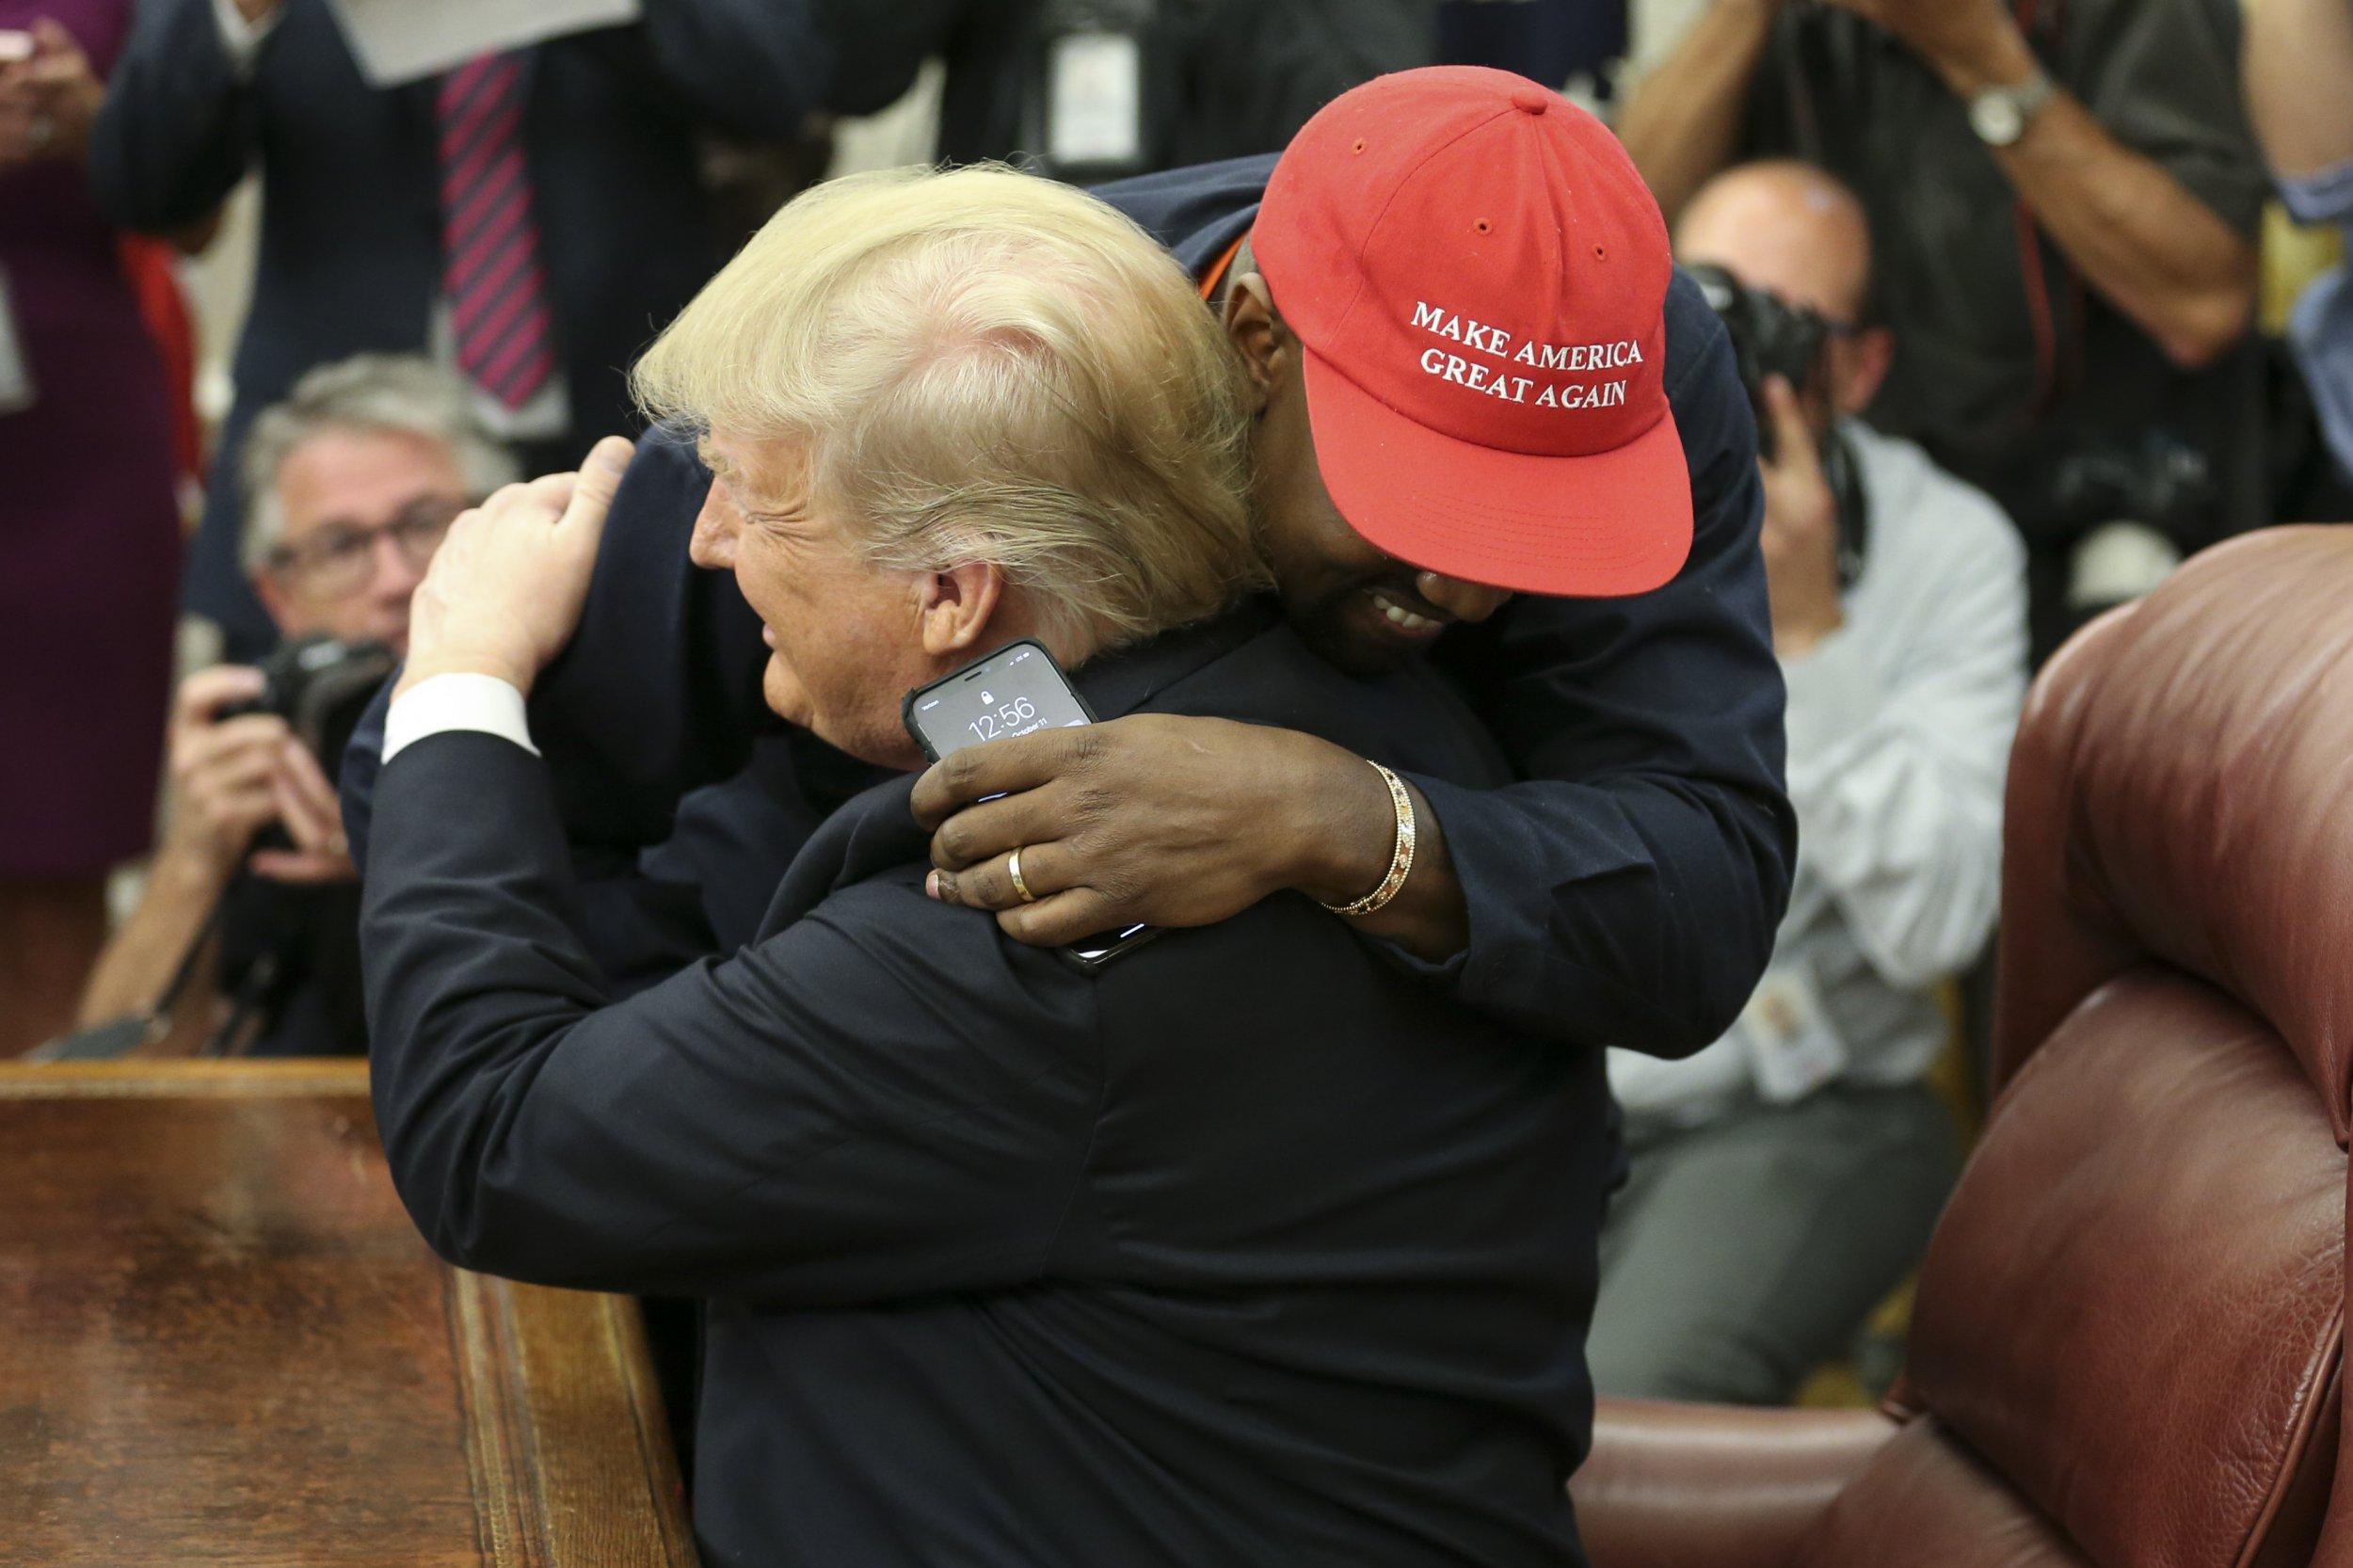 Kanye West's White House meeting with President Donald Trump was 'a toe-curling mark of respect'